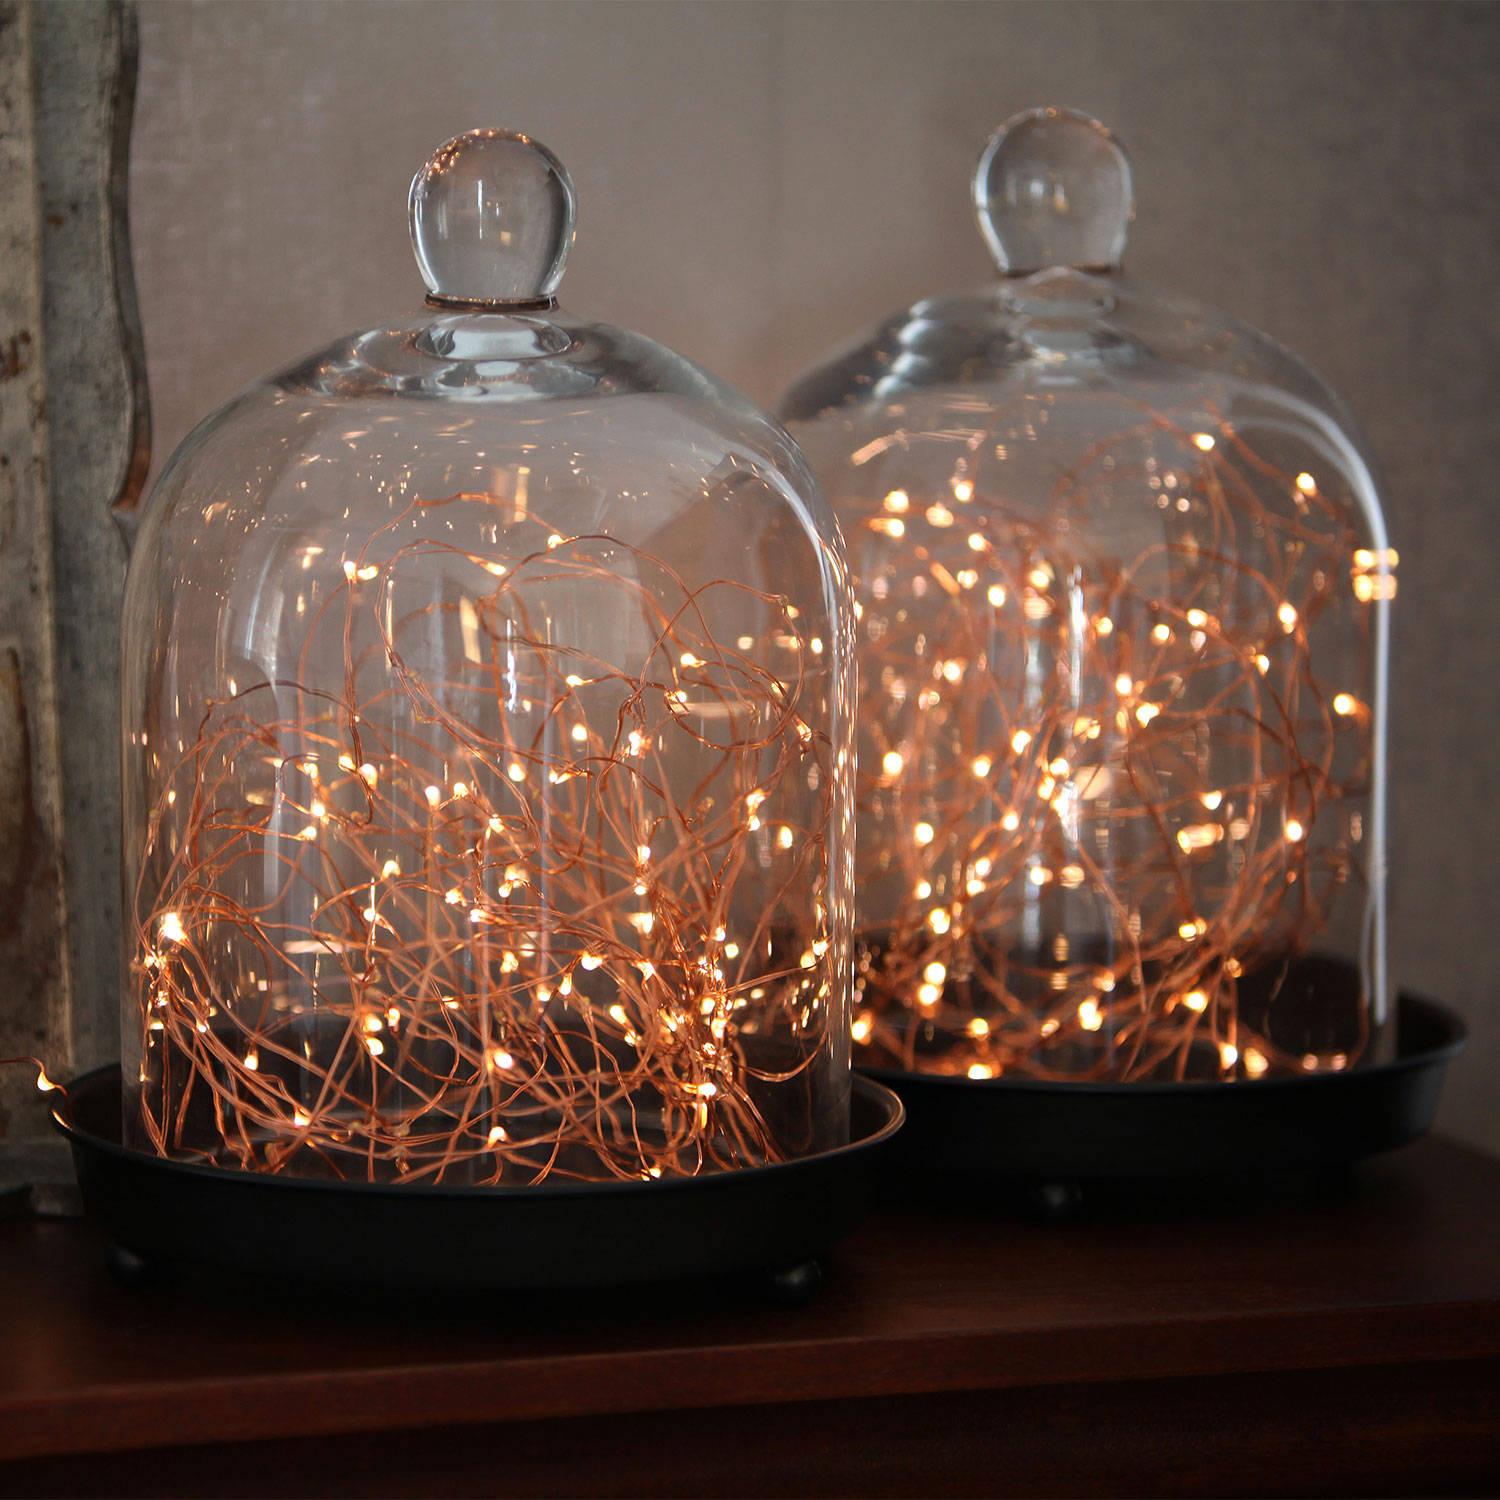 String Lights Houses : Lights.com String Lights Fairy Lights 300 Warm White Starry LED Copper Wire Plug-in String ...